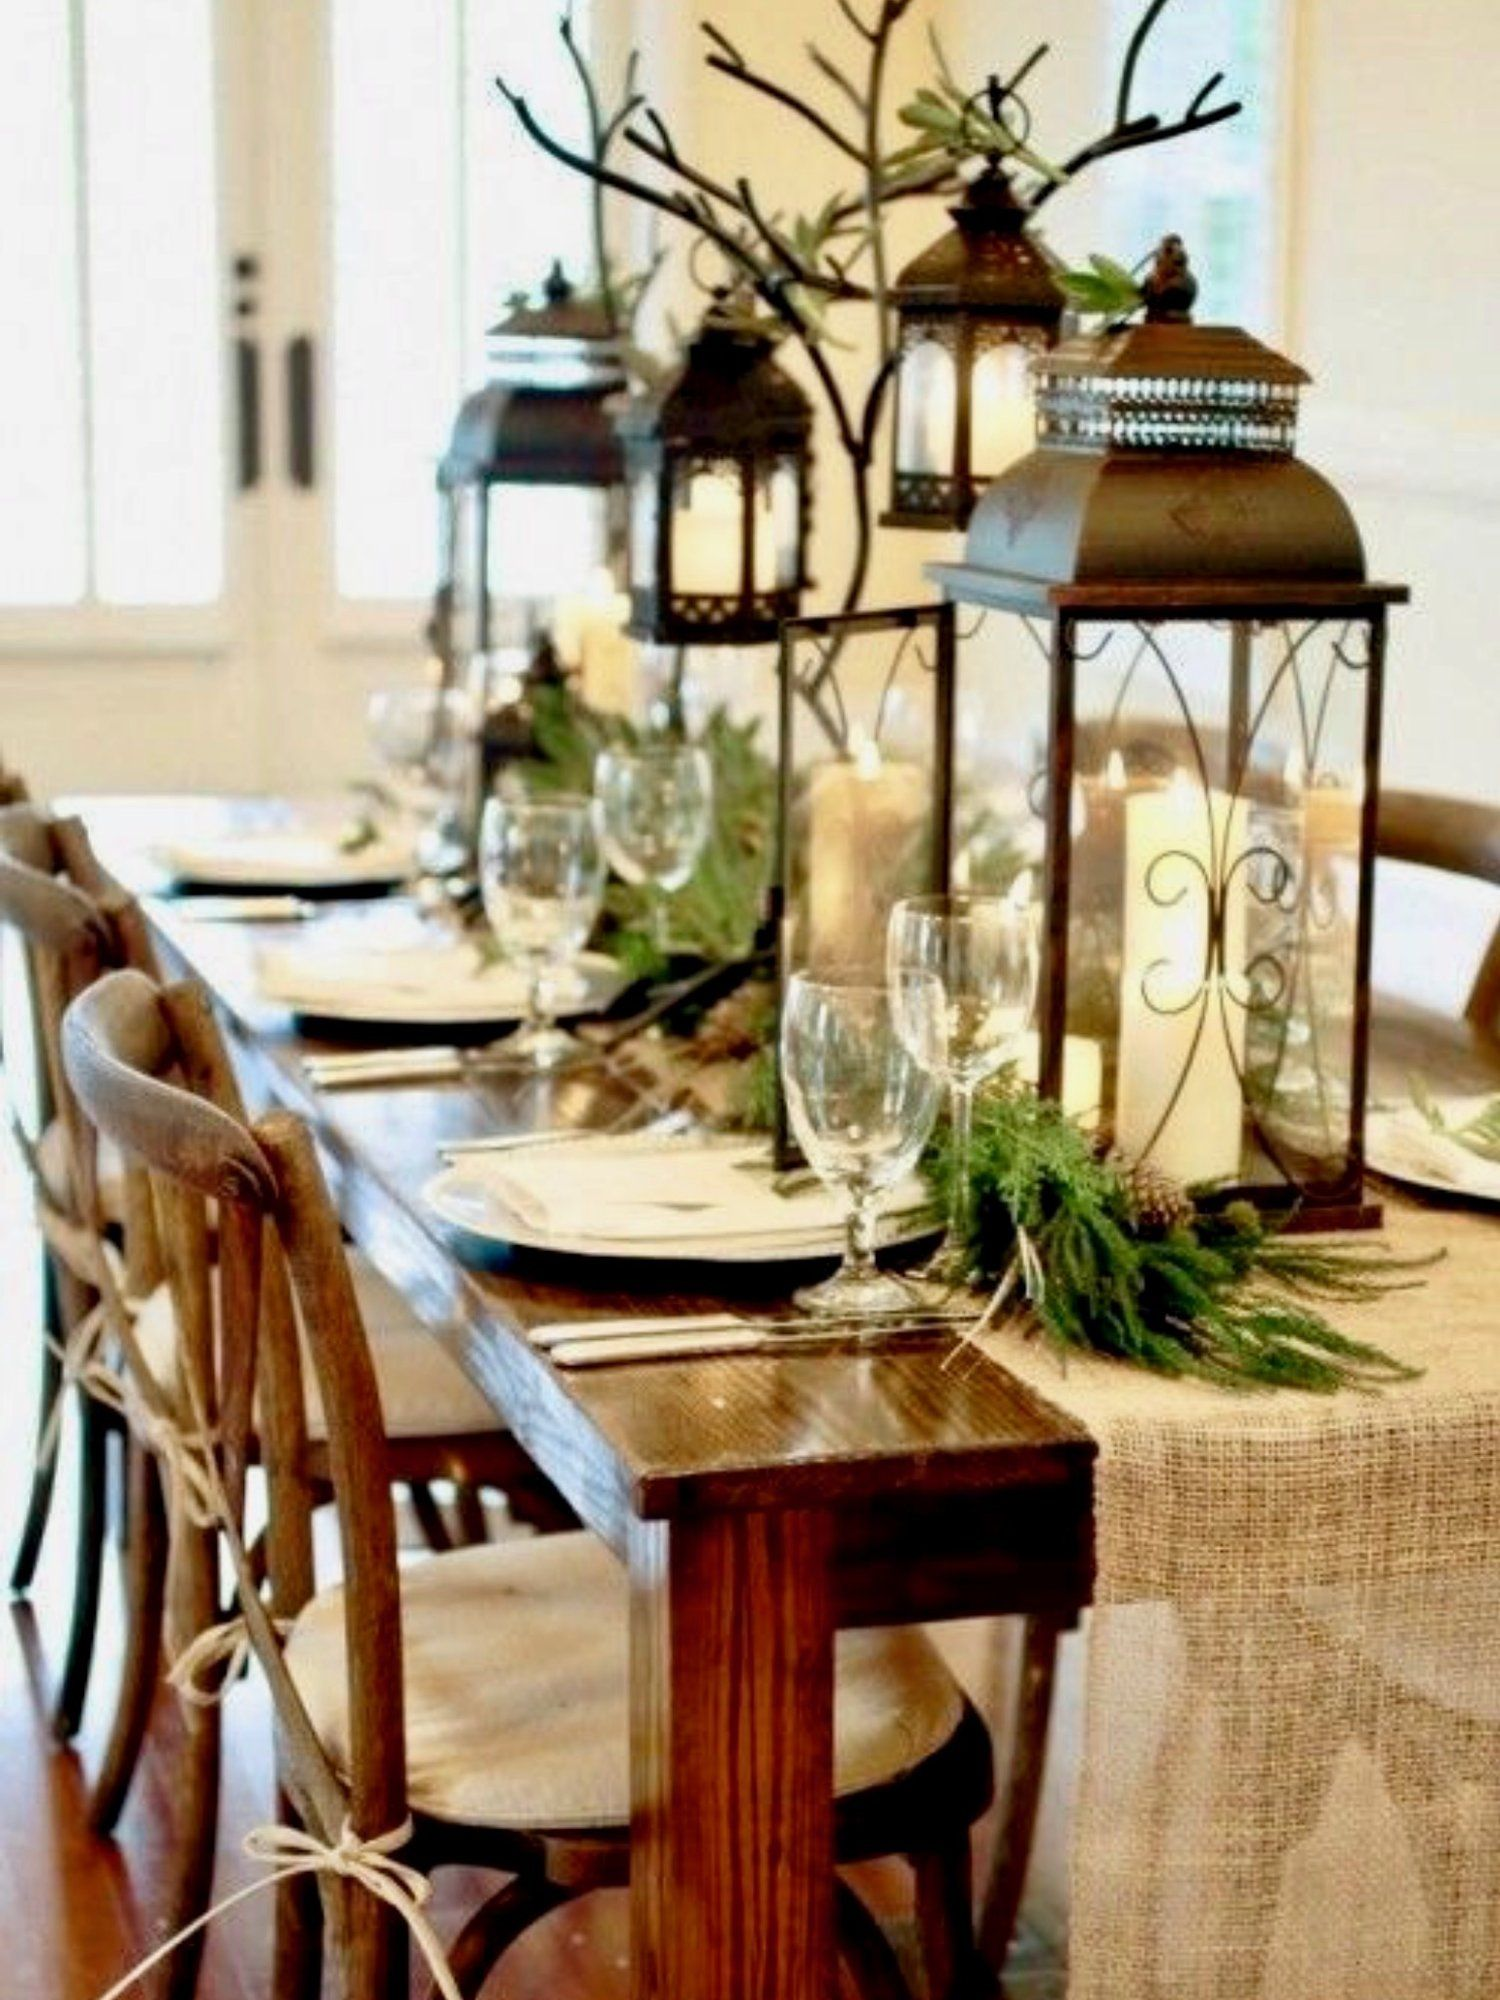 Top 250 Christmas Table Decorating Ideas on Pinterest @styleestate Christmas Home Christmas Dishes & Top 150 Christmas Tables (1/5)🎄 | Christmas Table Decorations ...